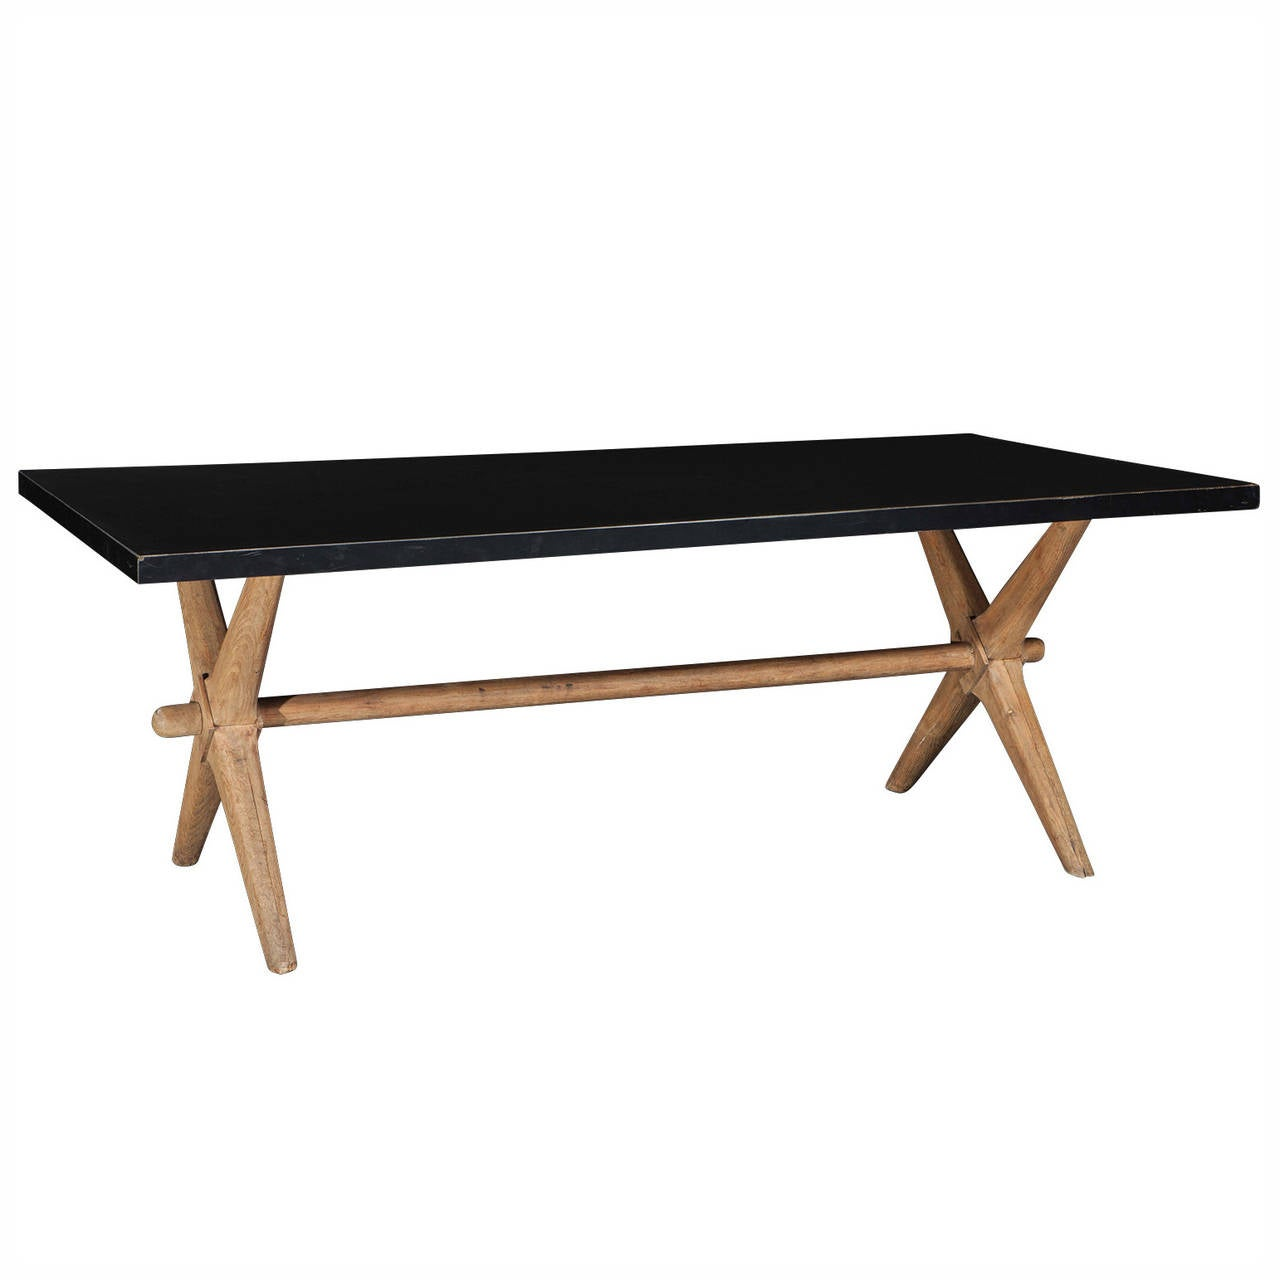 x frame dining table at 1stdibs